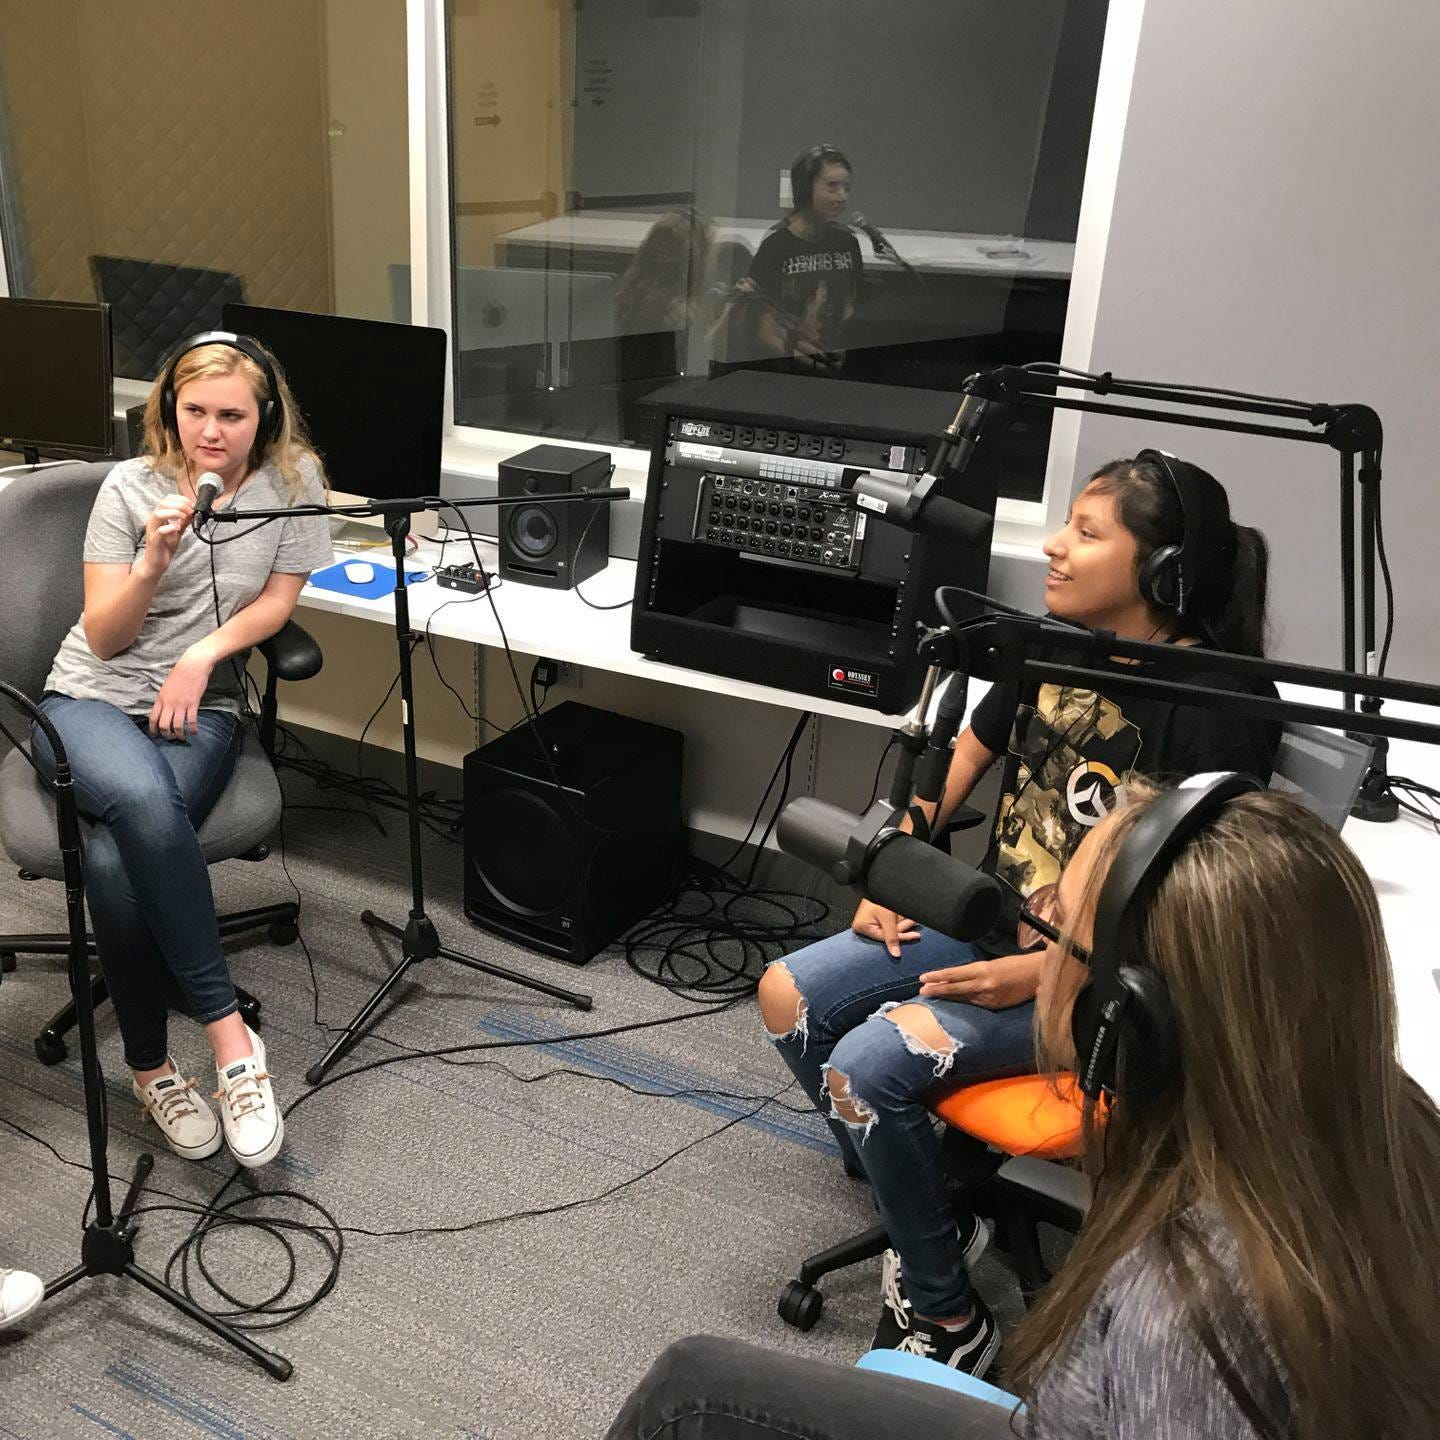 Season for Sharing: KJZZ provides perfect spot for budding journalists